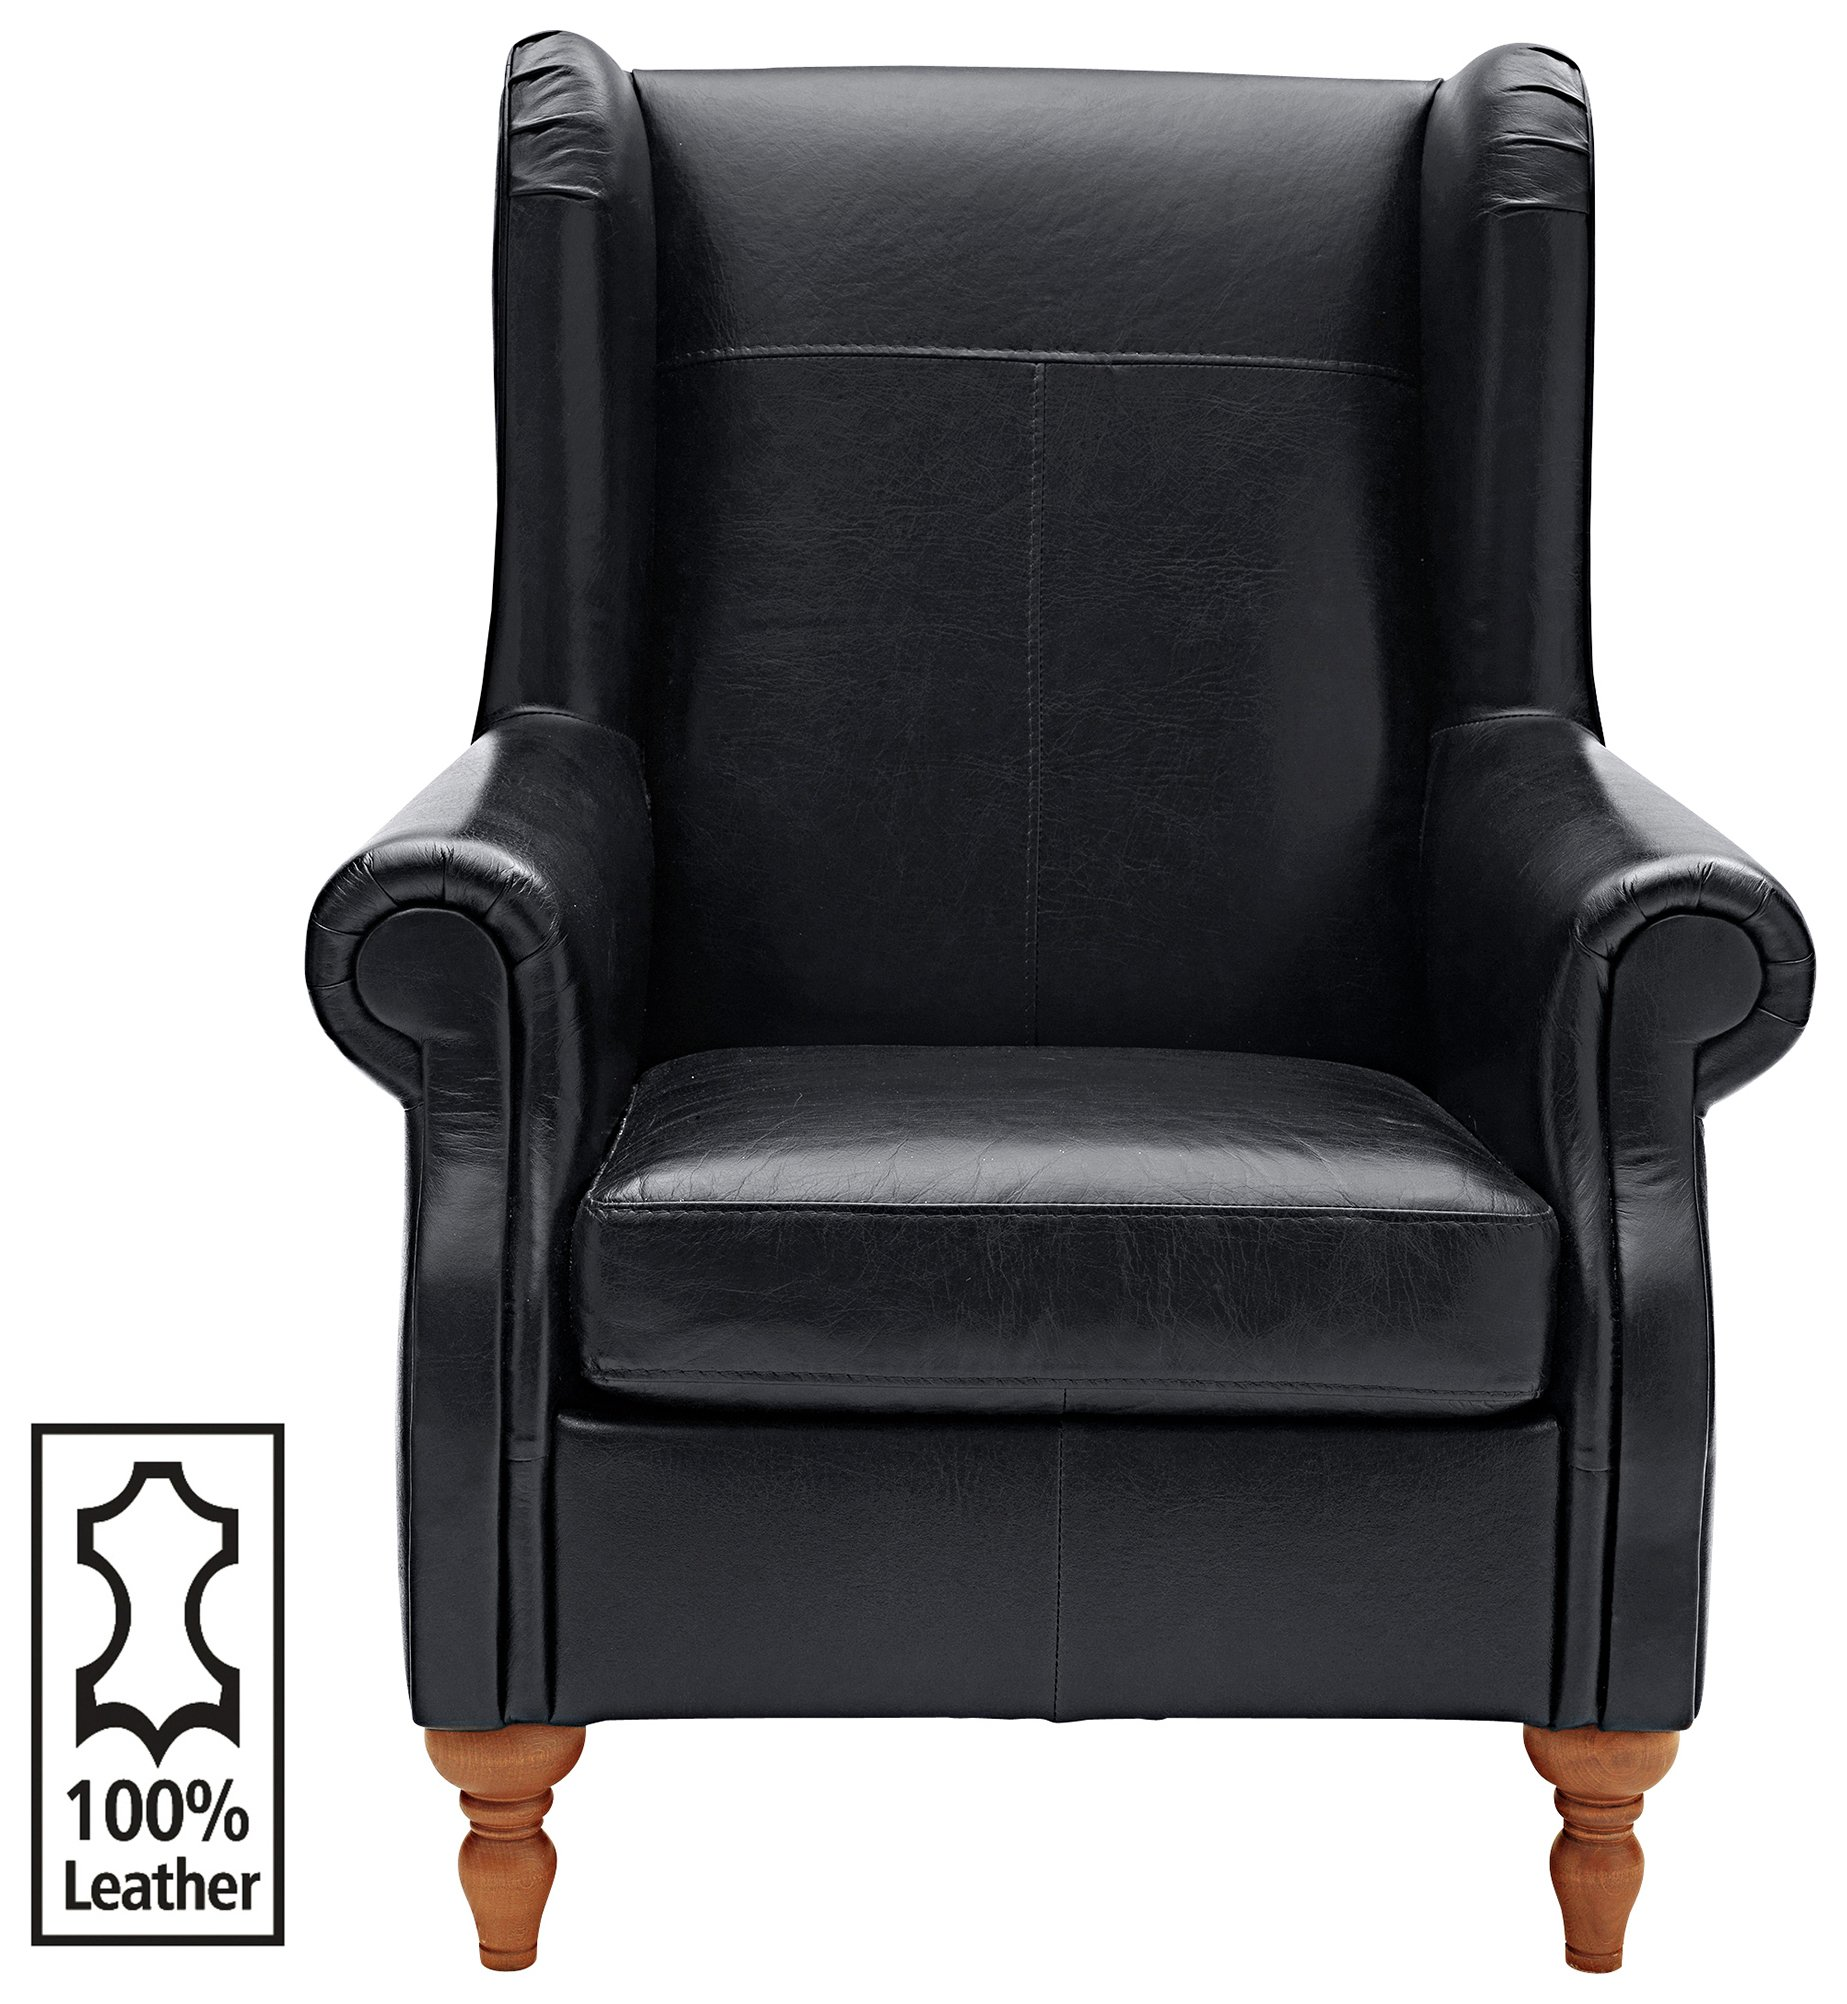 Sale On Argos Home Argyll Leather Chair Black